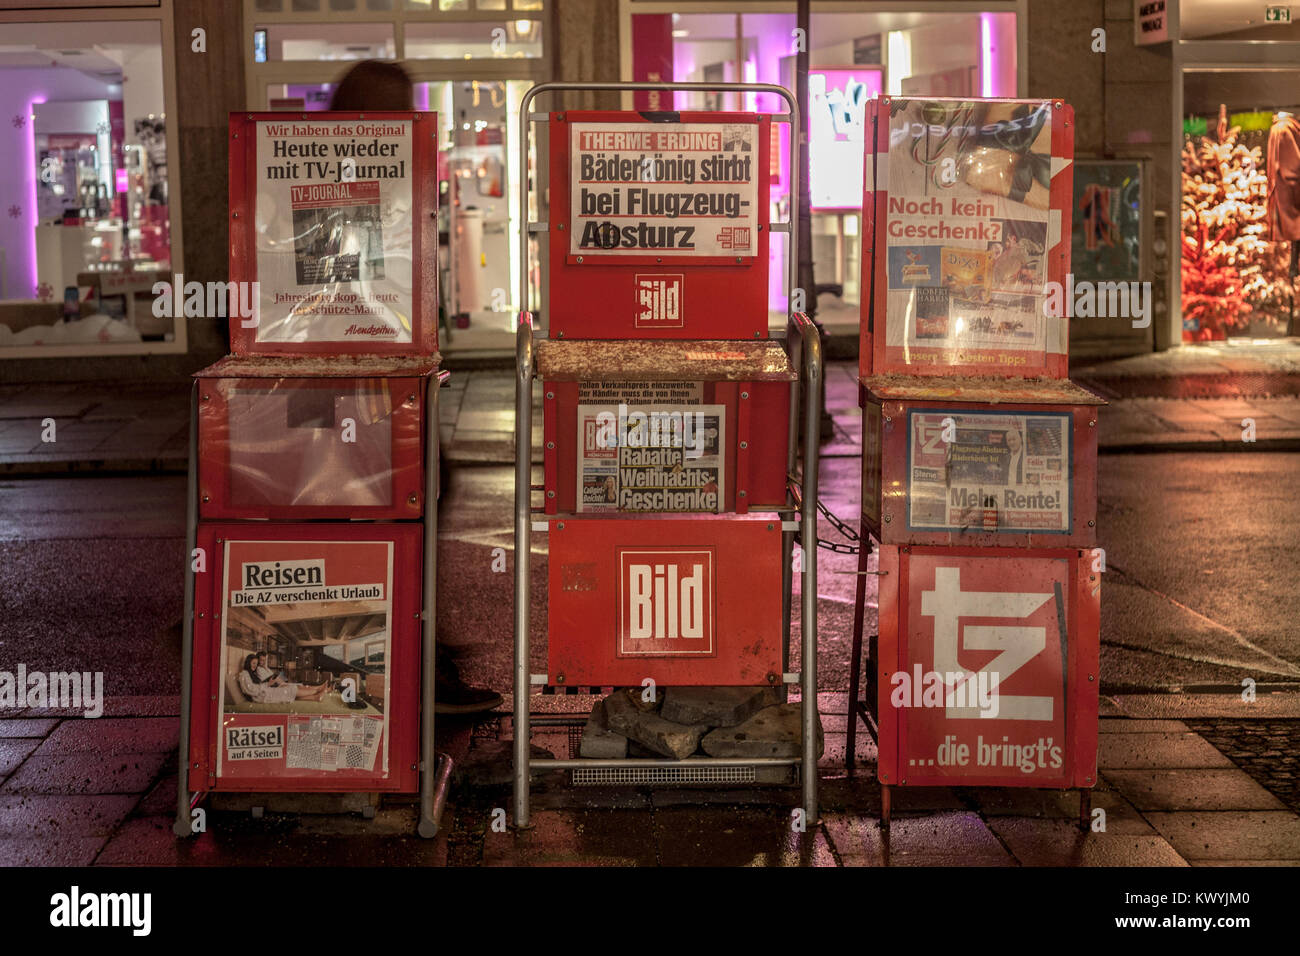 MUNICH, GERMANY - DECEMBER 17, 2017: German newspaper Bild Zeitung for sale in the streets of Munich on stands, - Stock Image